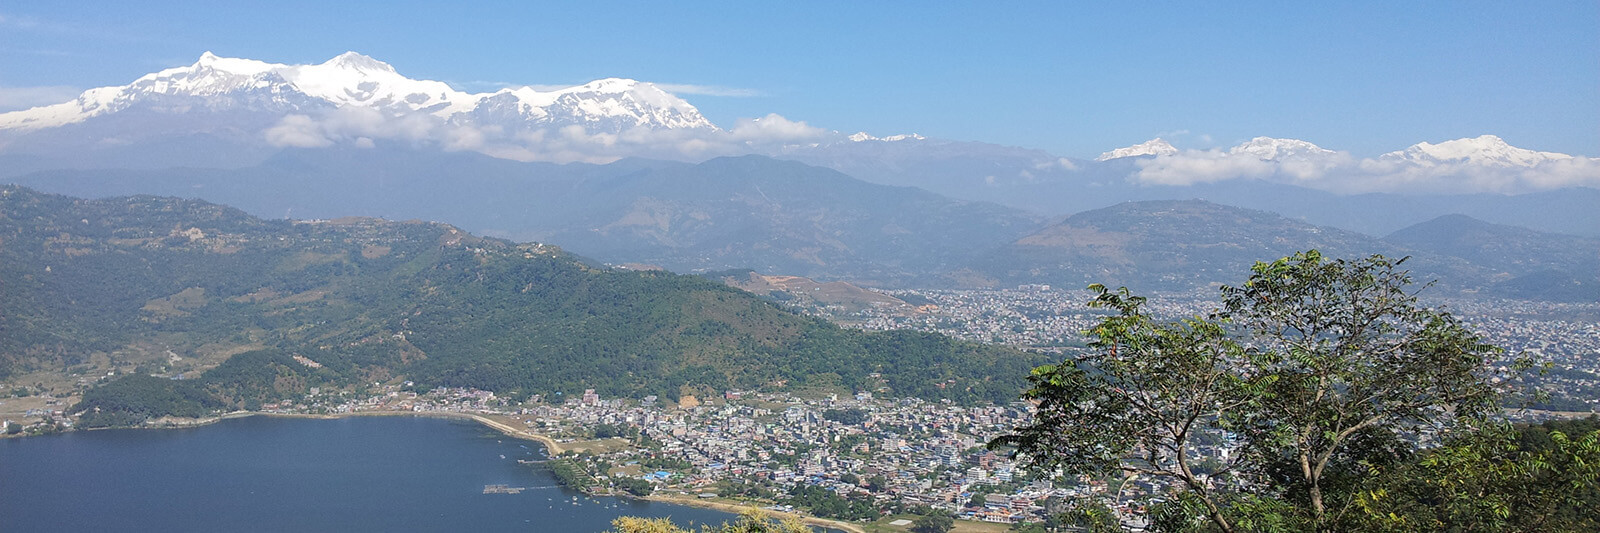 Pokhara, Nepal with the Annapurna Mountain Range in the backrgound